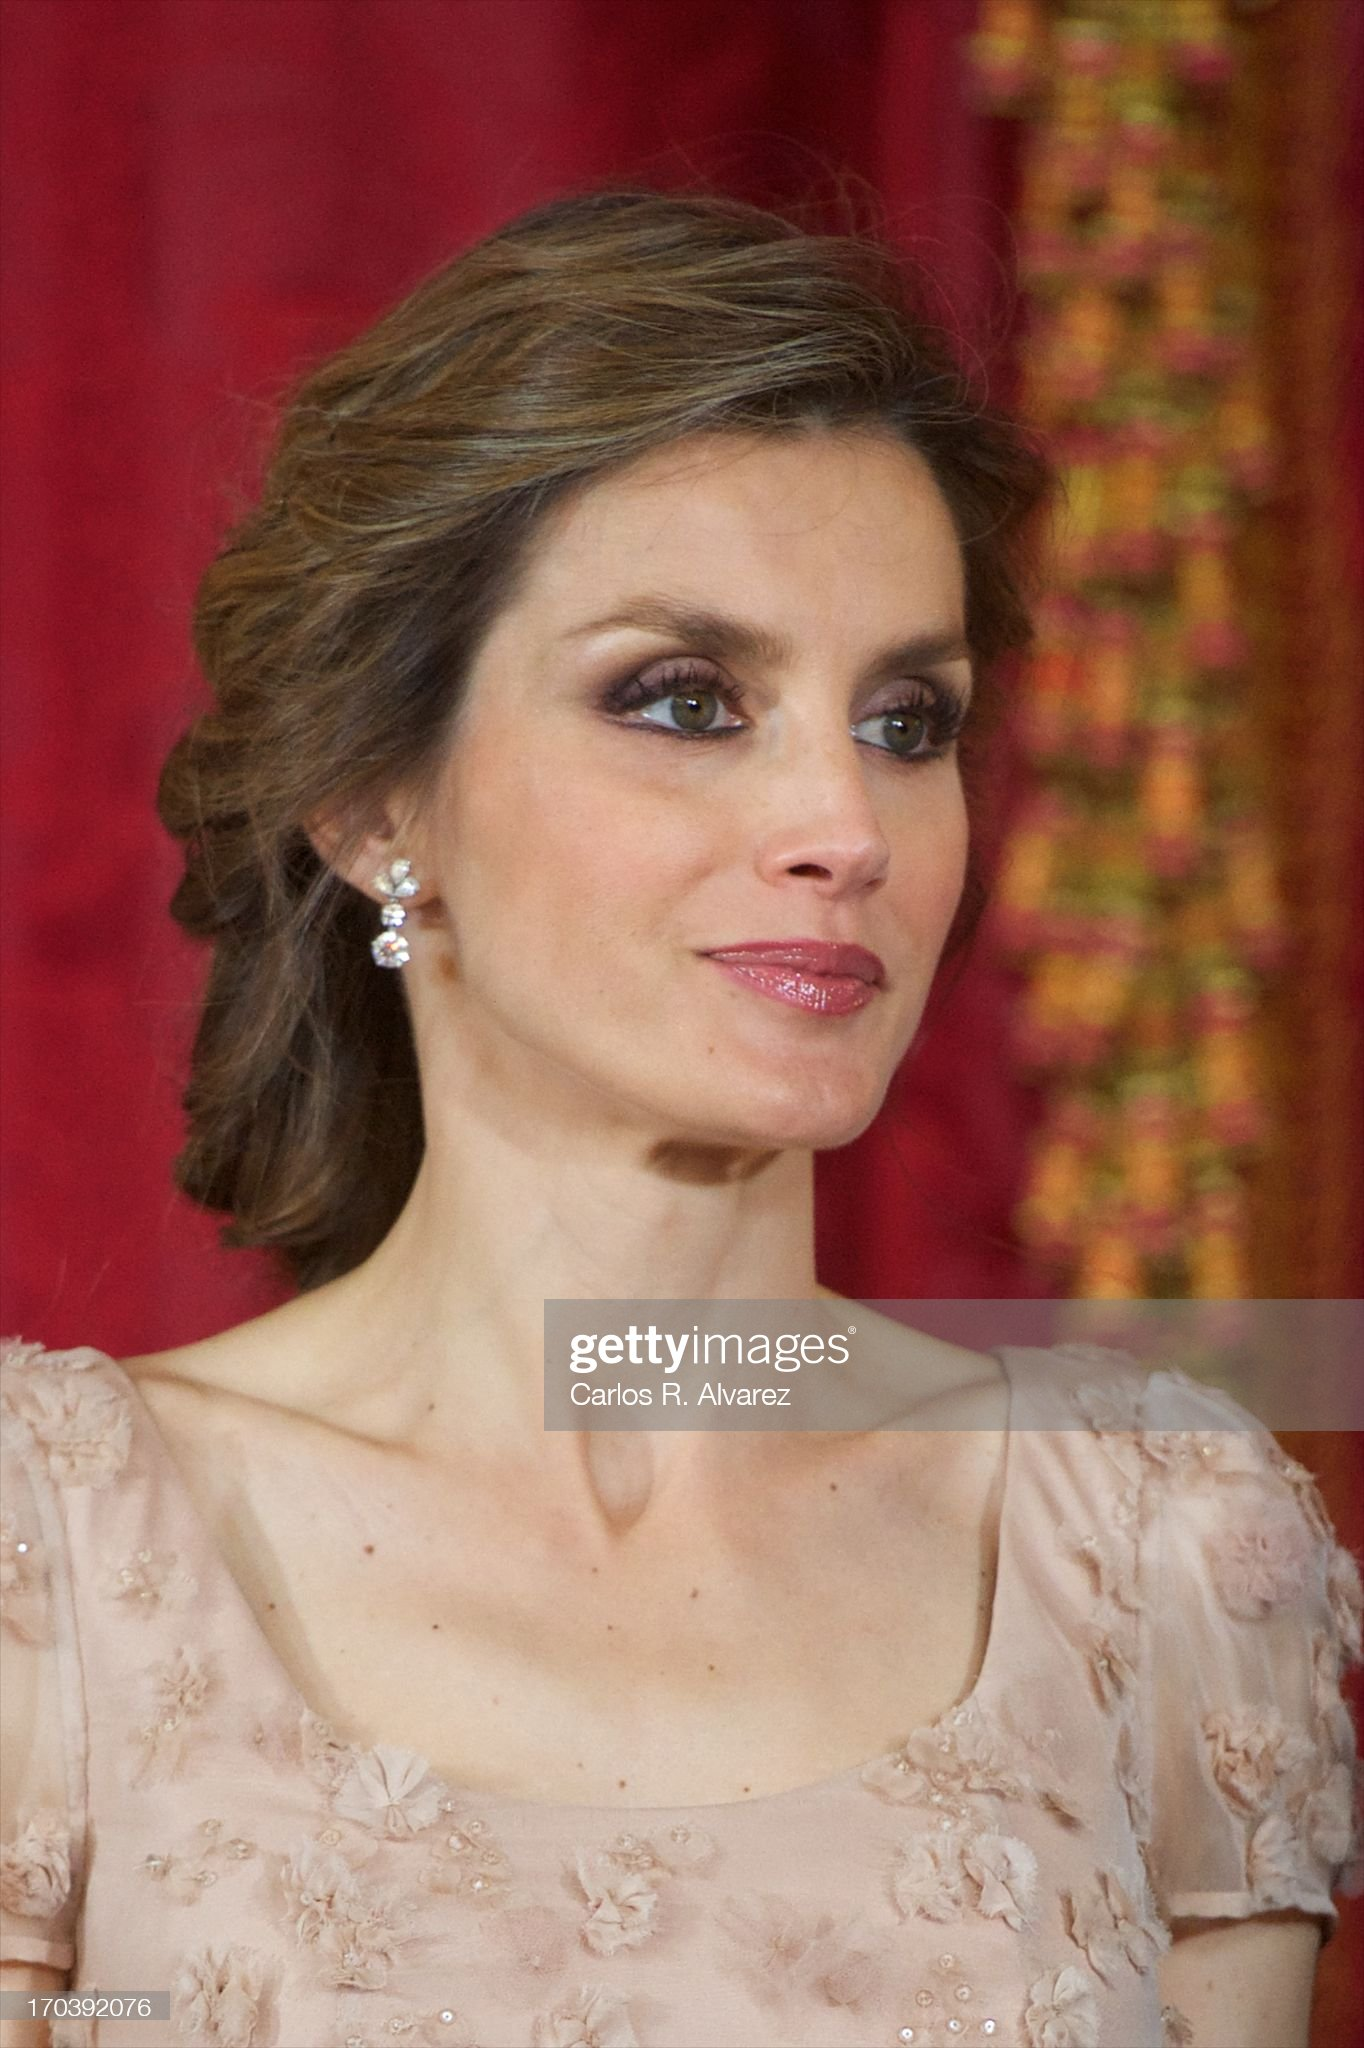 Spanish Royals and Japanese Crown Prince Naruhito Attend Dinner Gala : News Photo